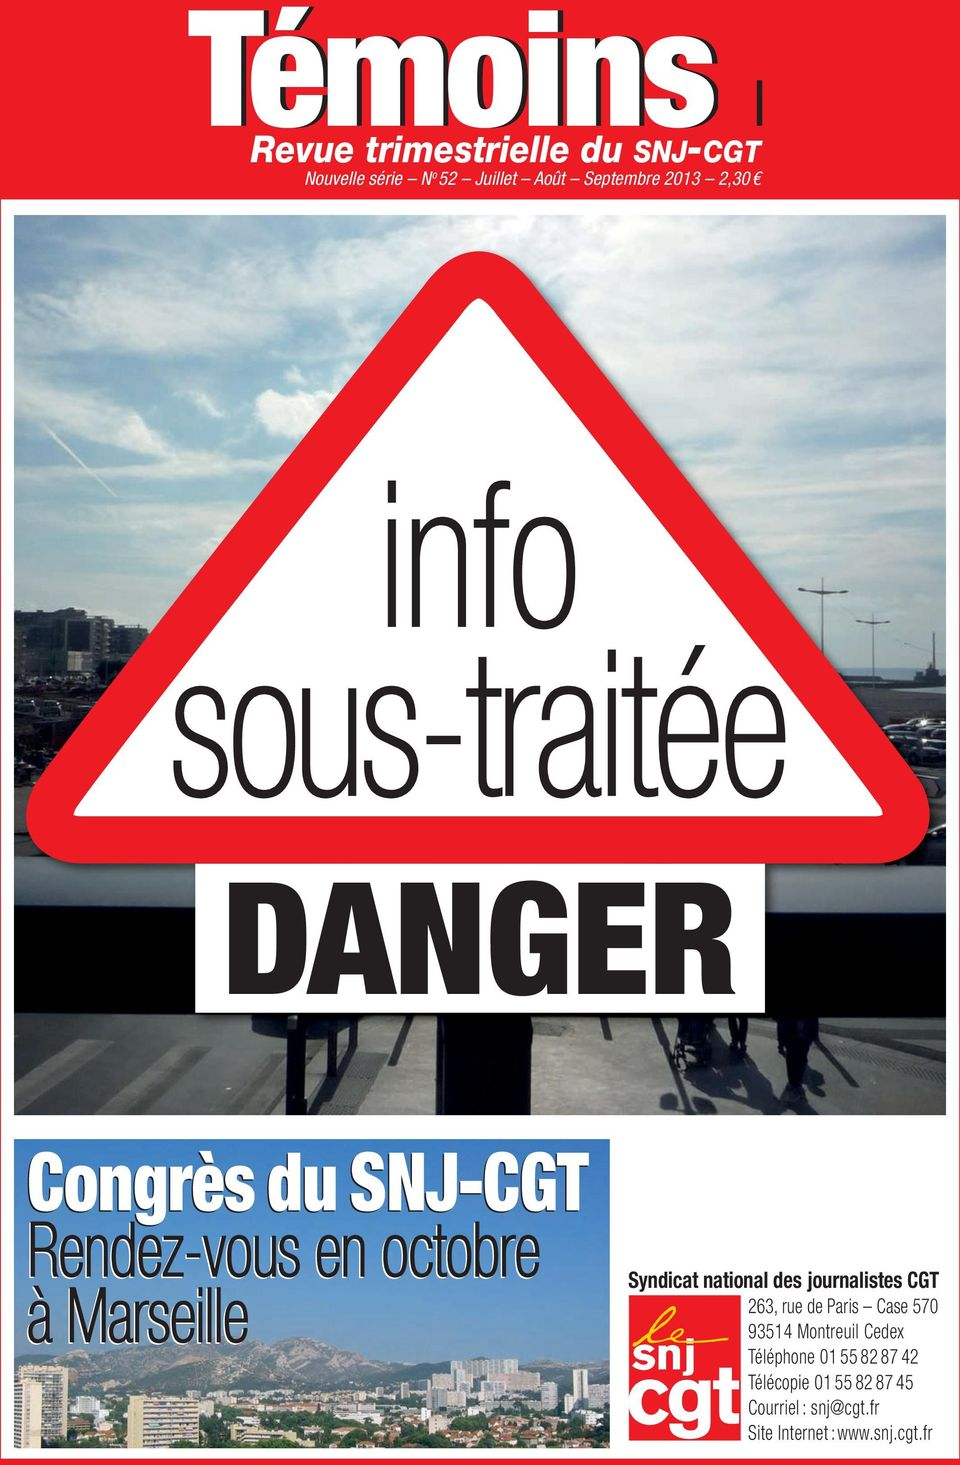 Syndicat national des journalistes CGT 263, rue de Paris Case 570 93514 Montreuil Cedex